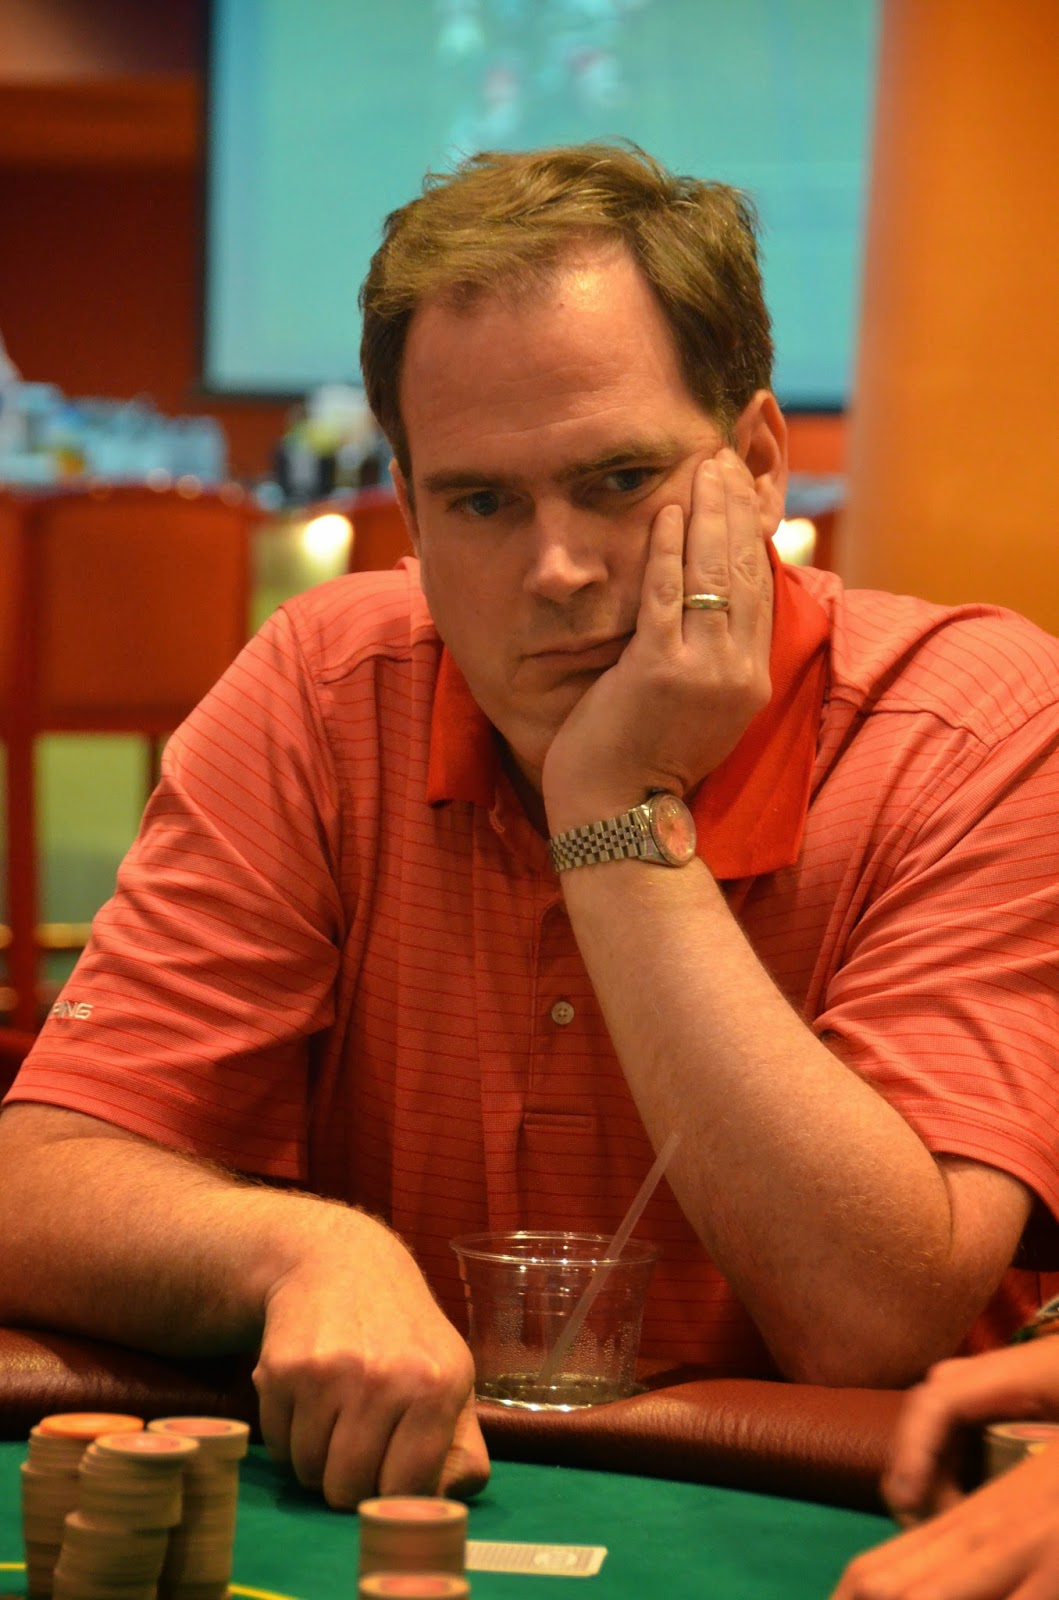 Parx big stax vii big stax 1500 day 2 18th place bolte 5 005 for Parx poker room live game report